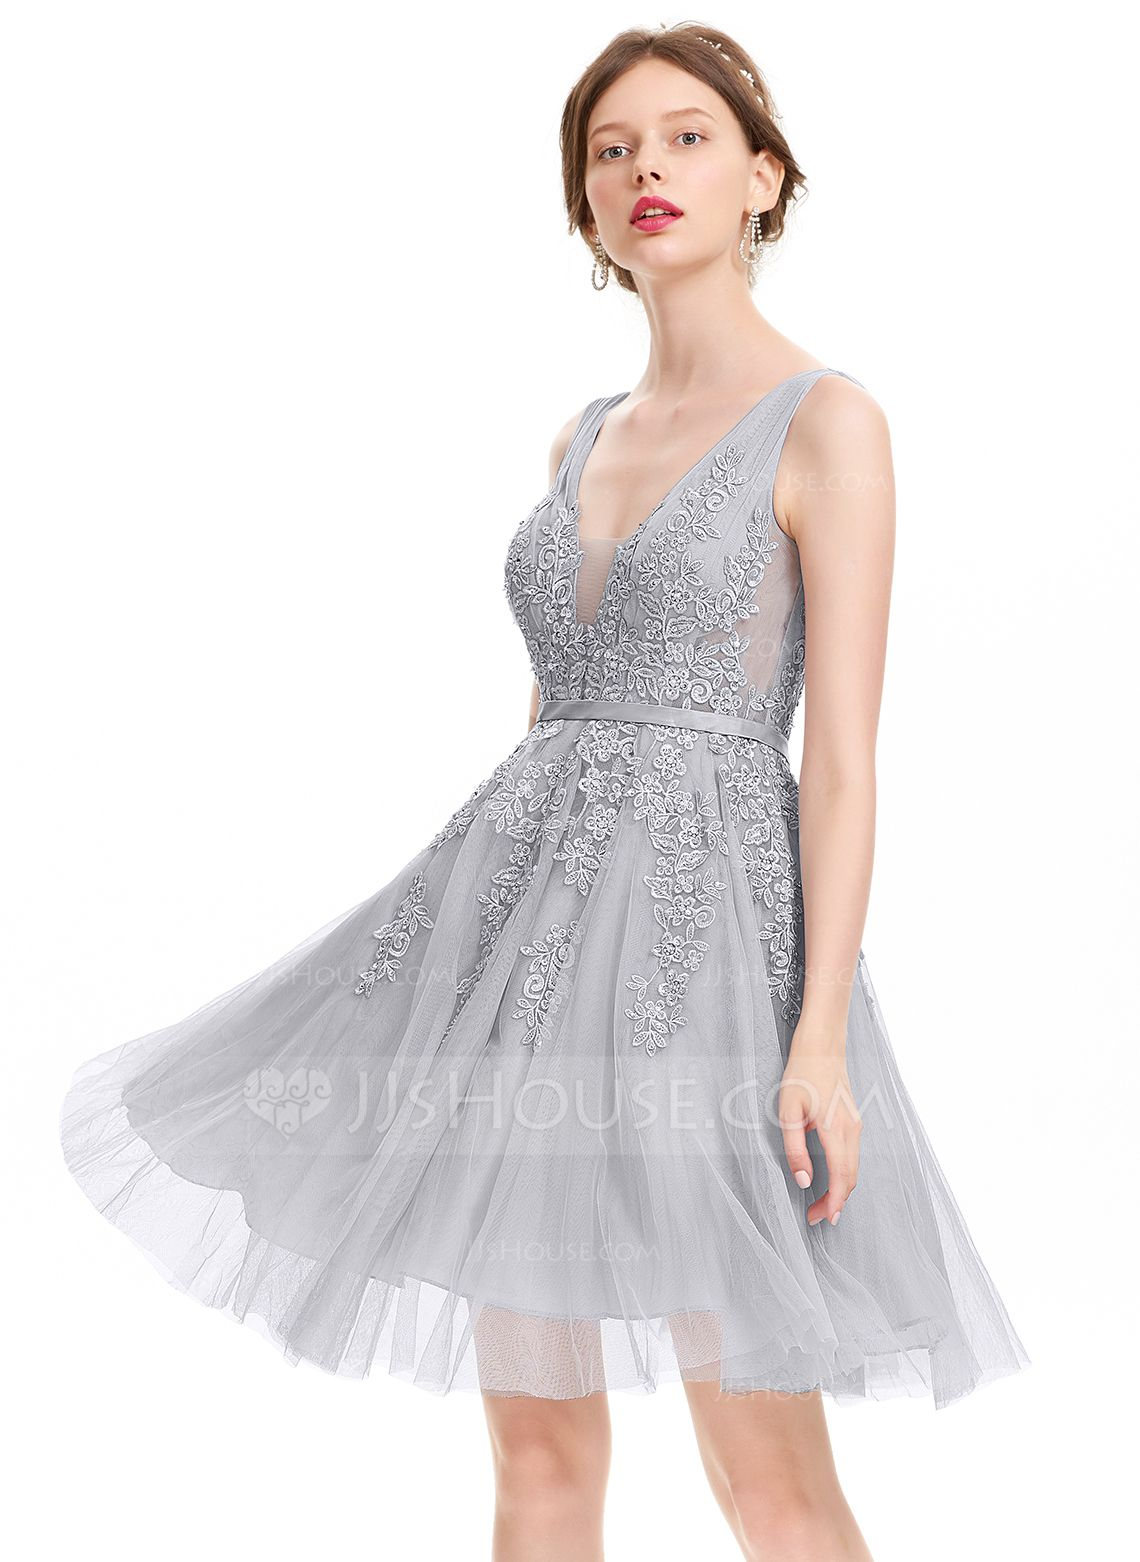 US$ 12.12] A-Line V-neck Knee-Length Tulle Homecoming Dress With